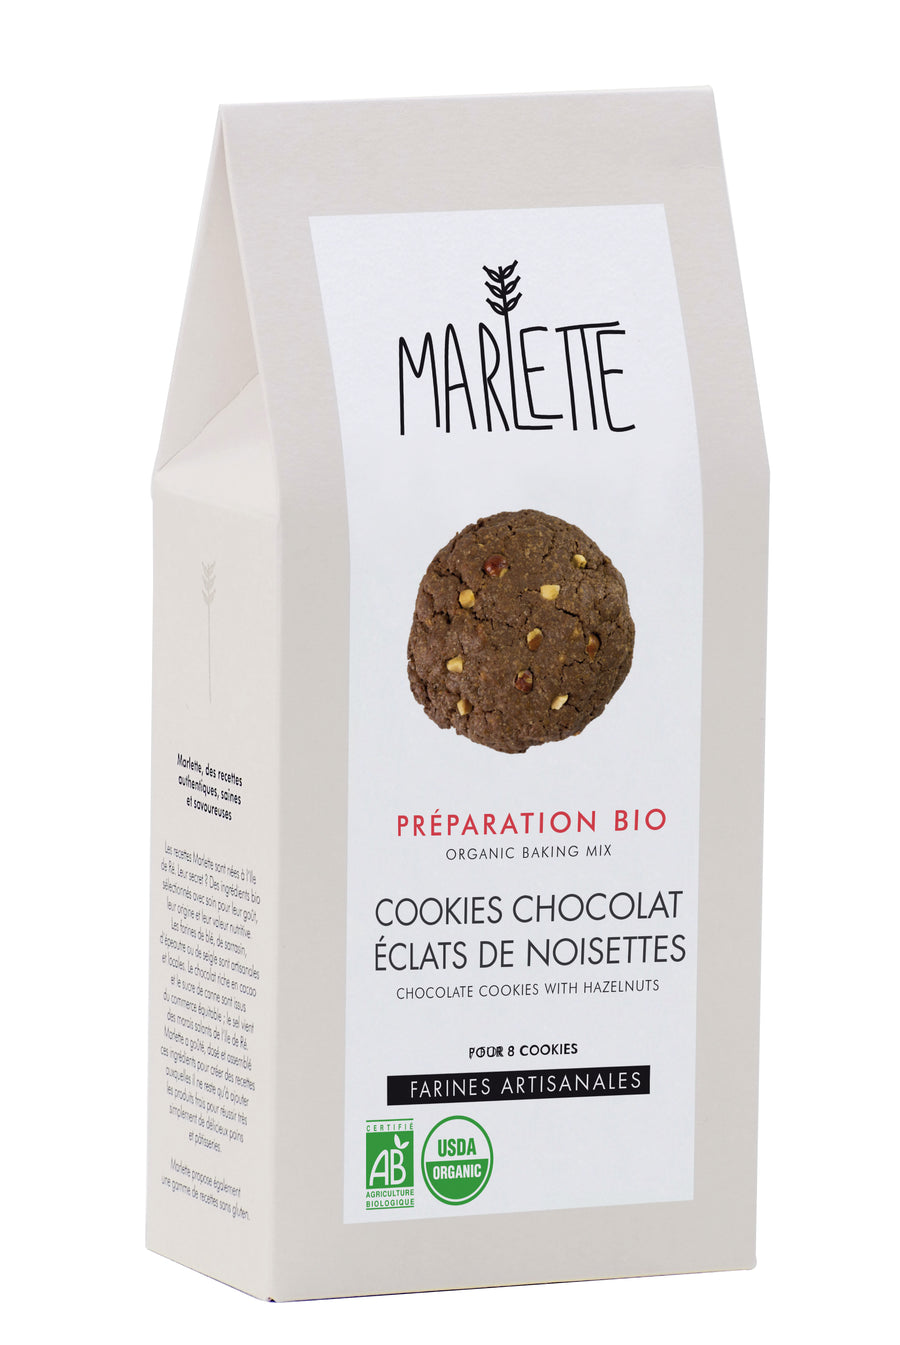 Marlette Chocolate Cookies with Hazelnuts